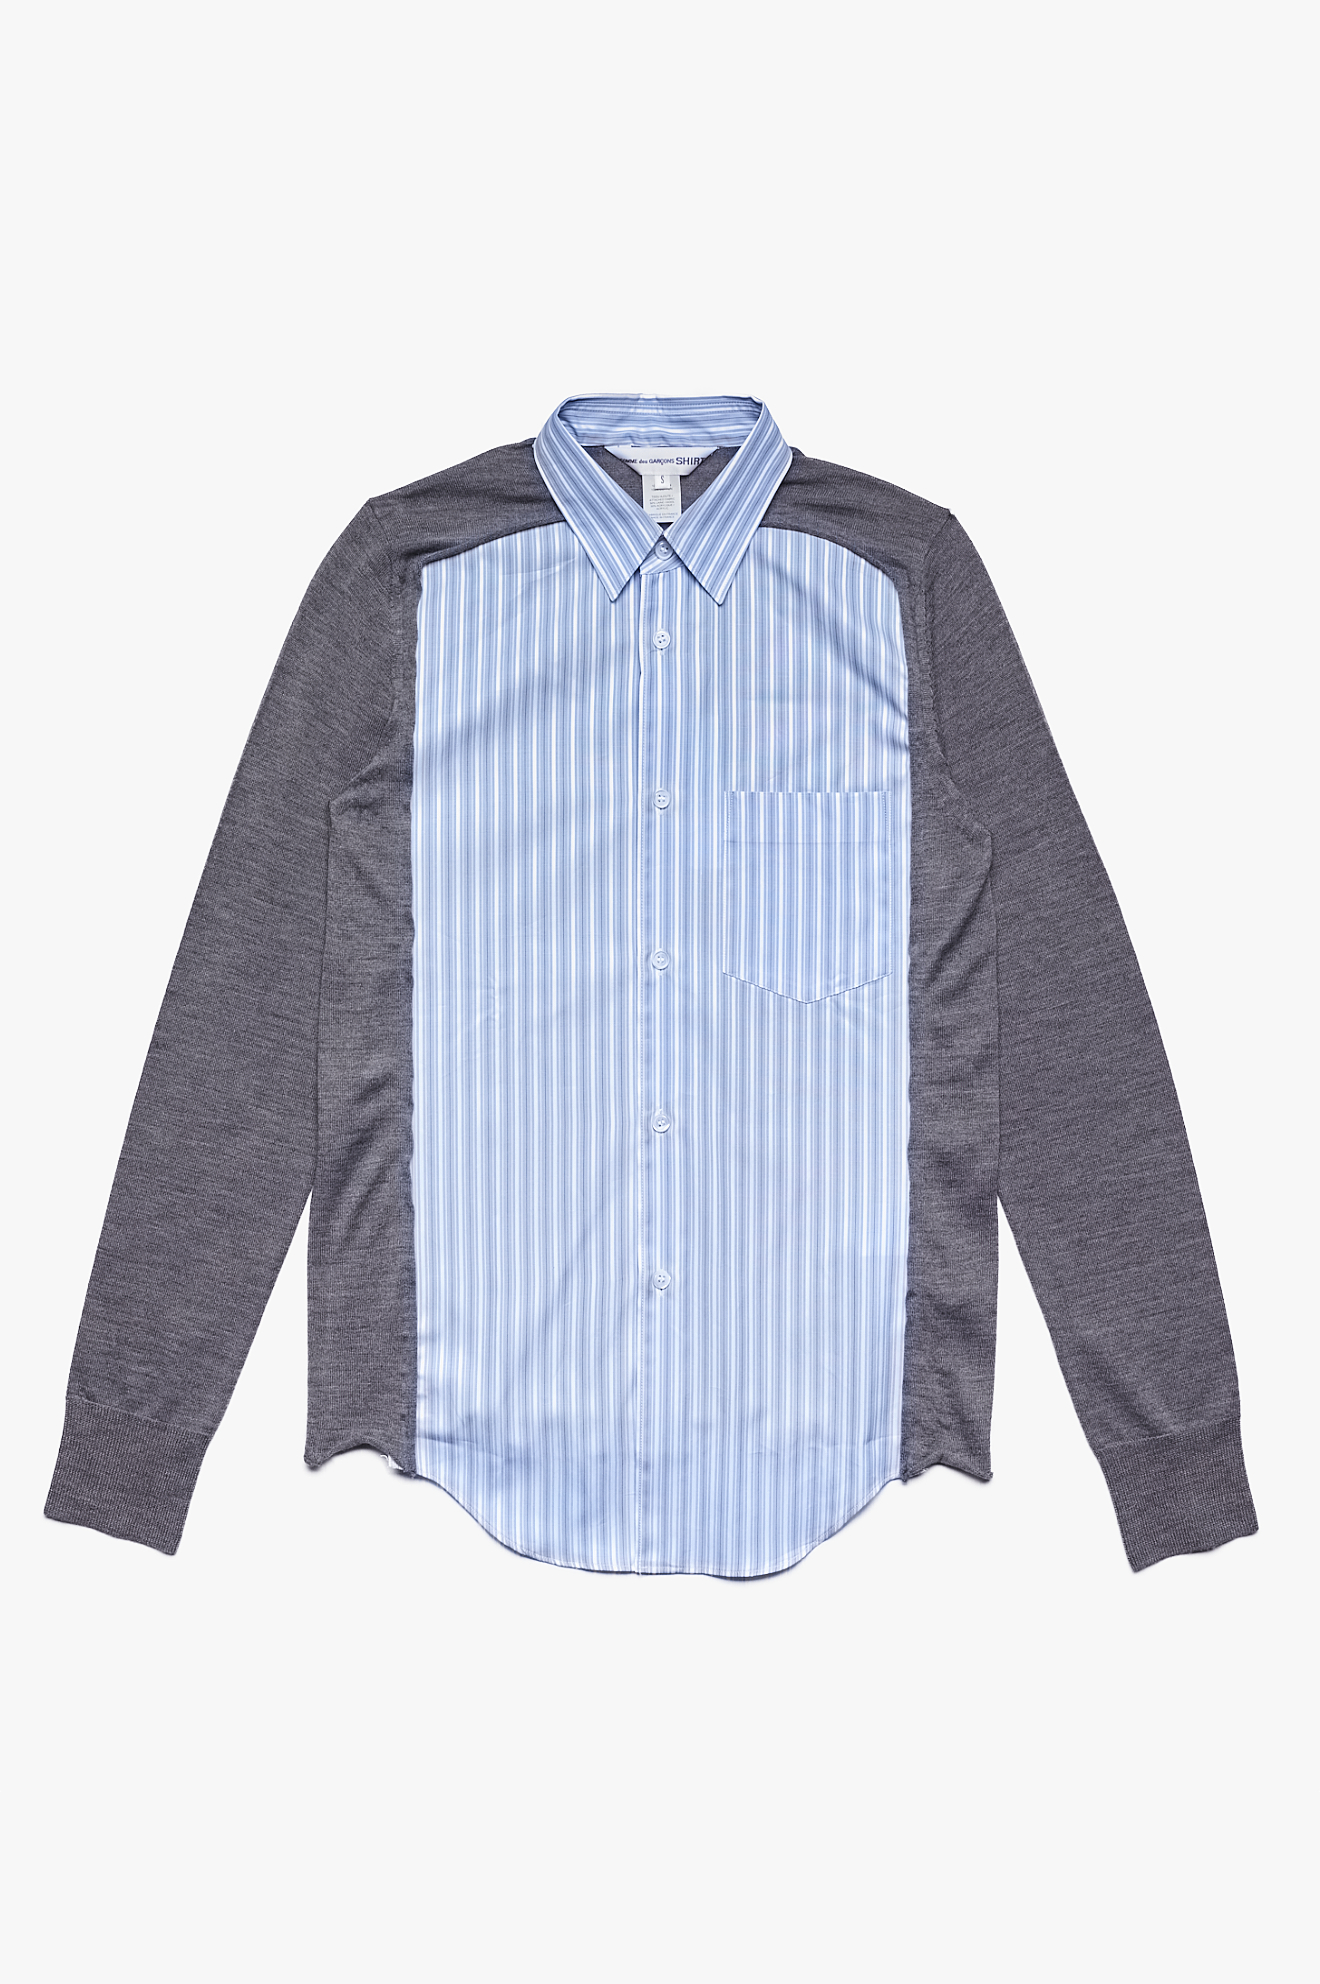 Knitted Sleeves Striped Shirt Blue / Grey